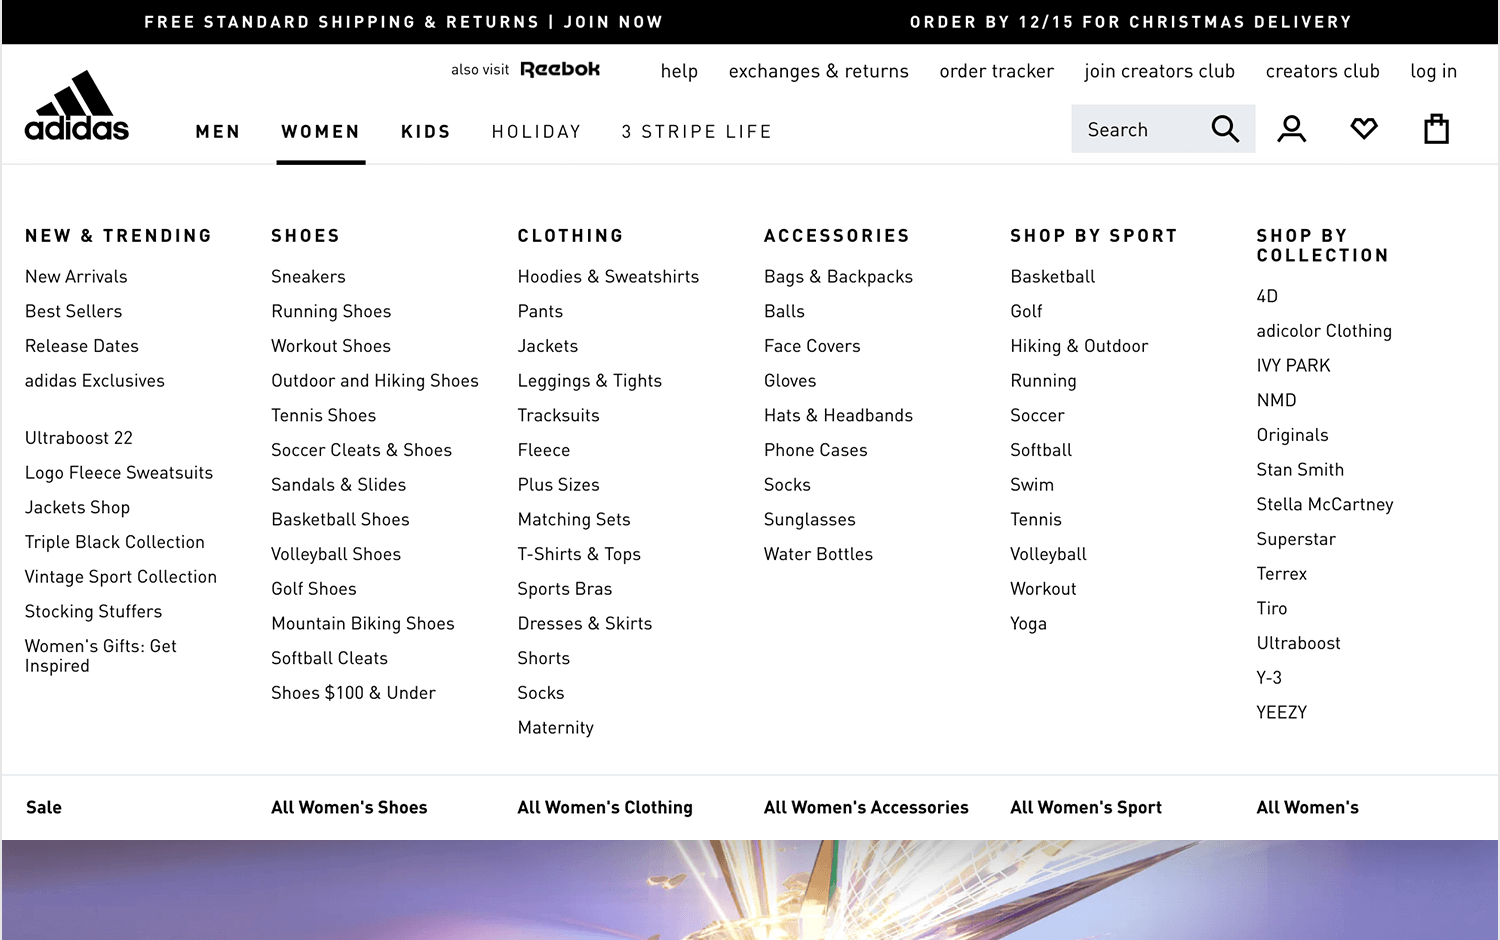 showing example of principle of exemplars for information architecture from adidas website